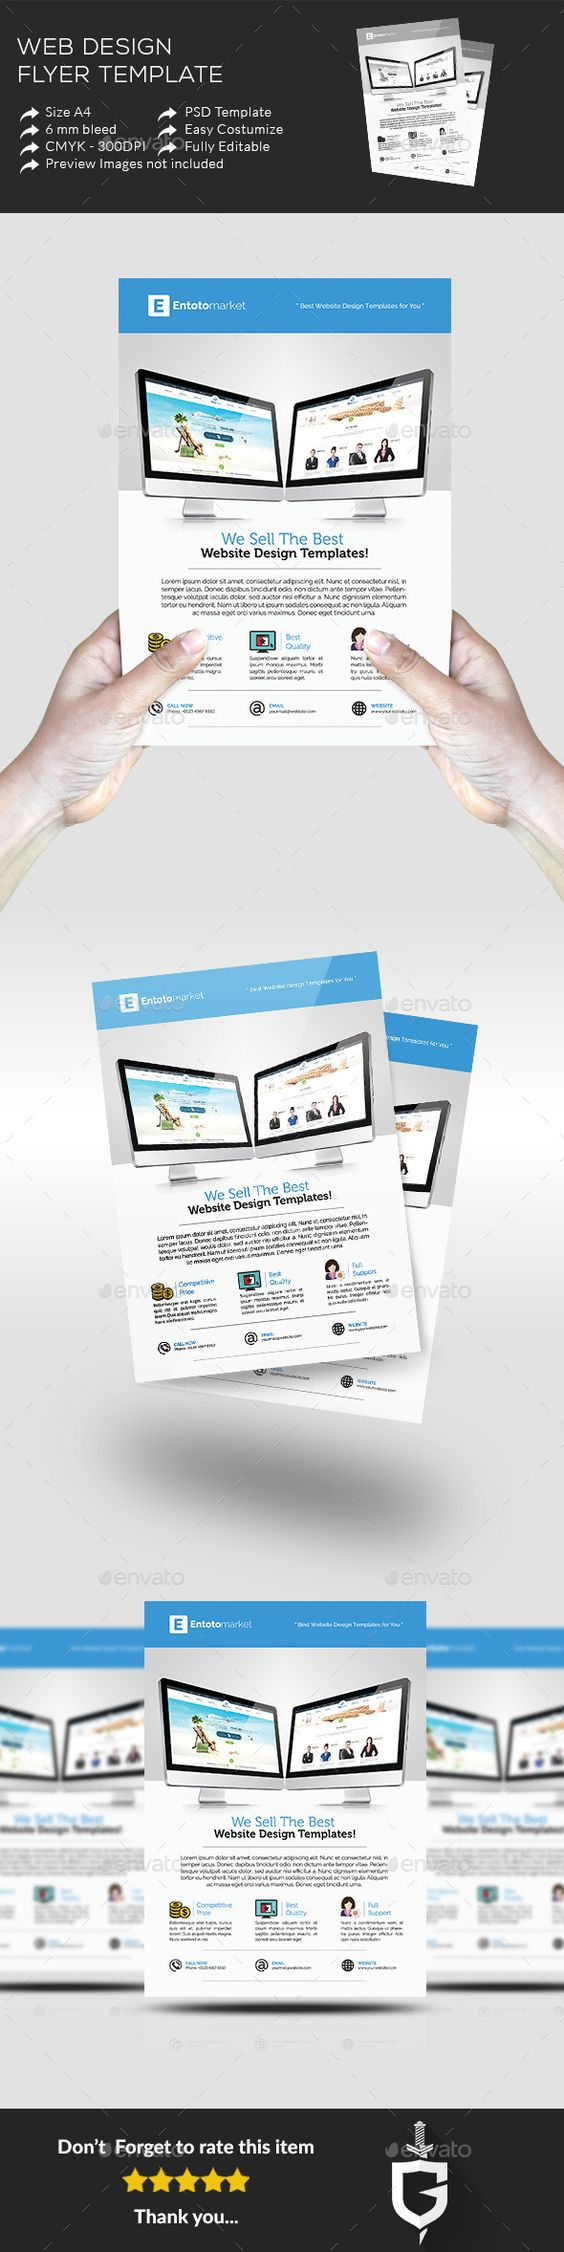 Web Design Flyer Temp  Flyer Template Flyers And Web Design